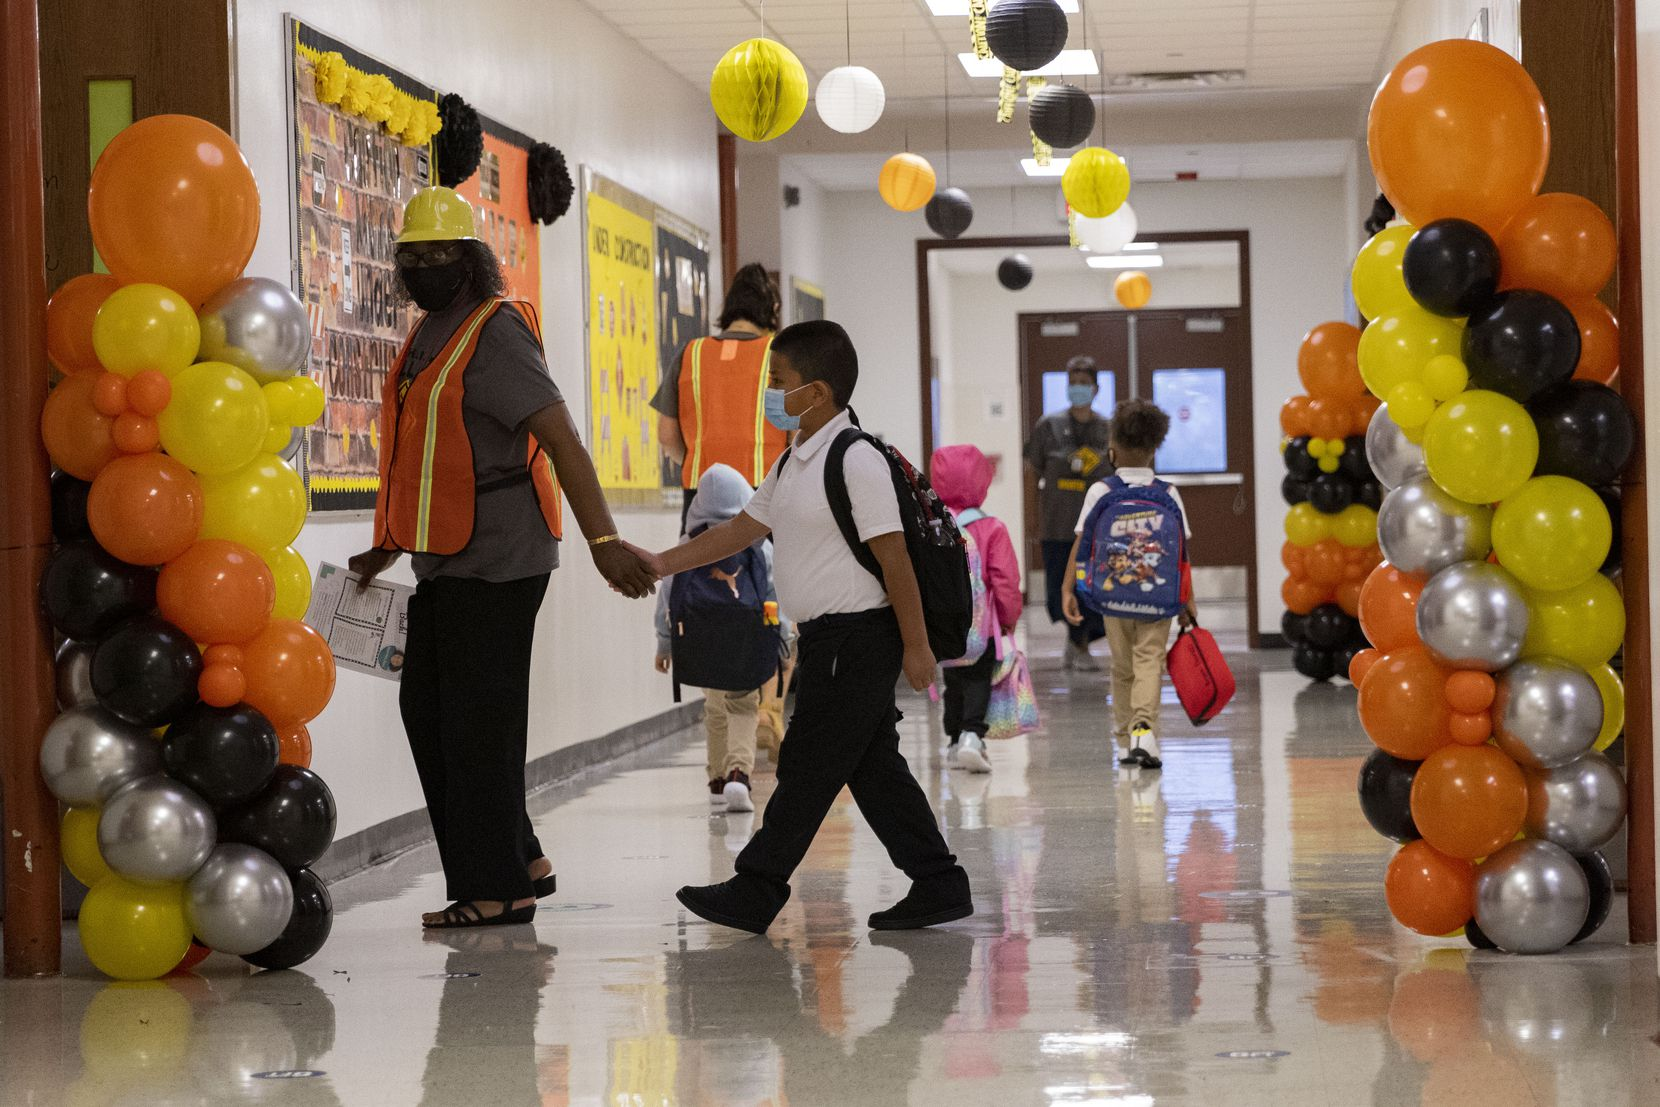 Students and teachers during the first day of school on Aug. 2, 2021, at H.I. Holland Elementary School in Dallas. Many parents are concerned statewide about the inability of individual districts to mandate masks.